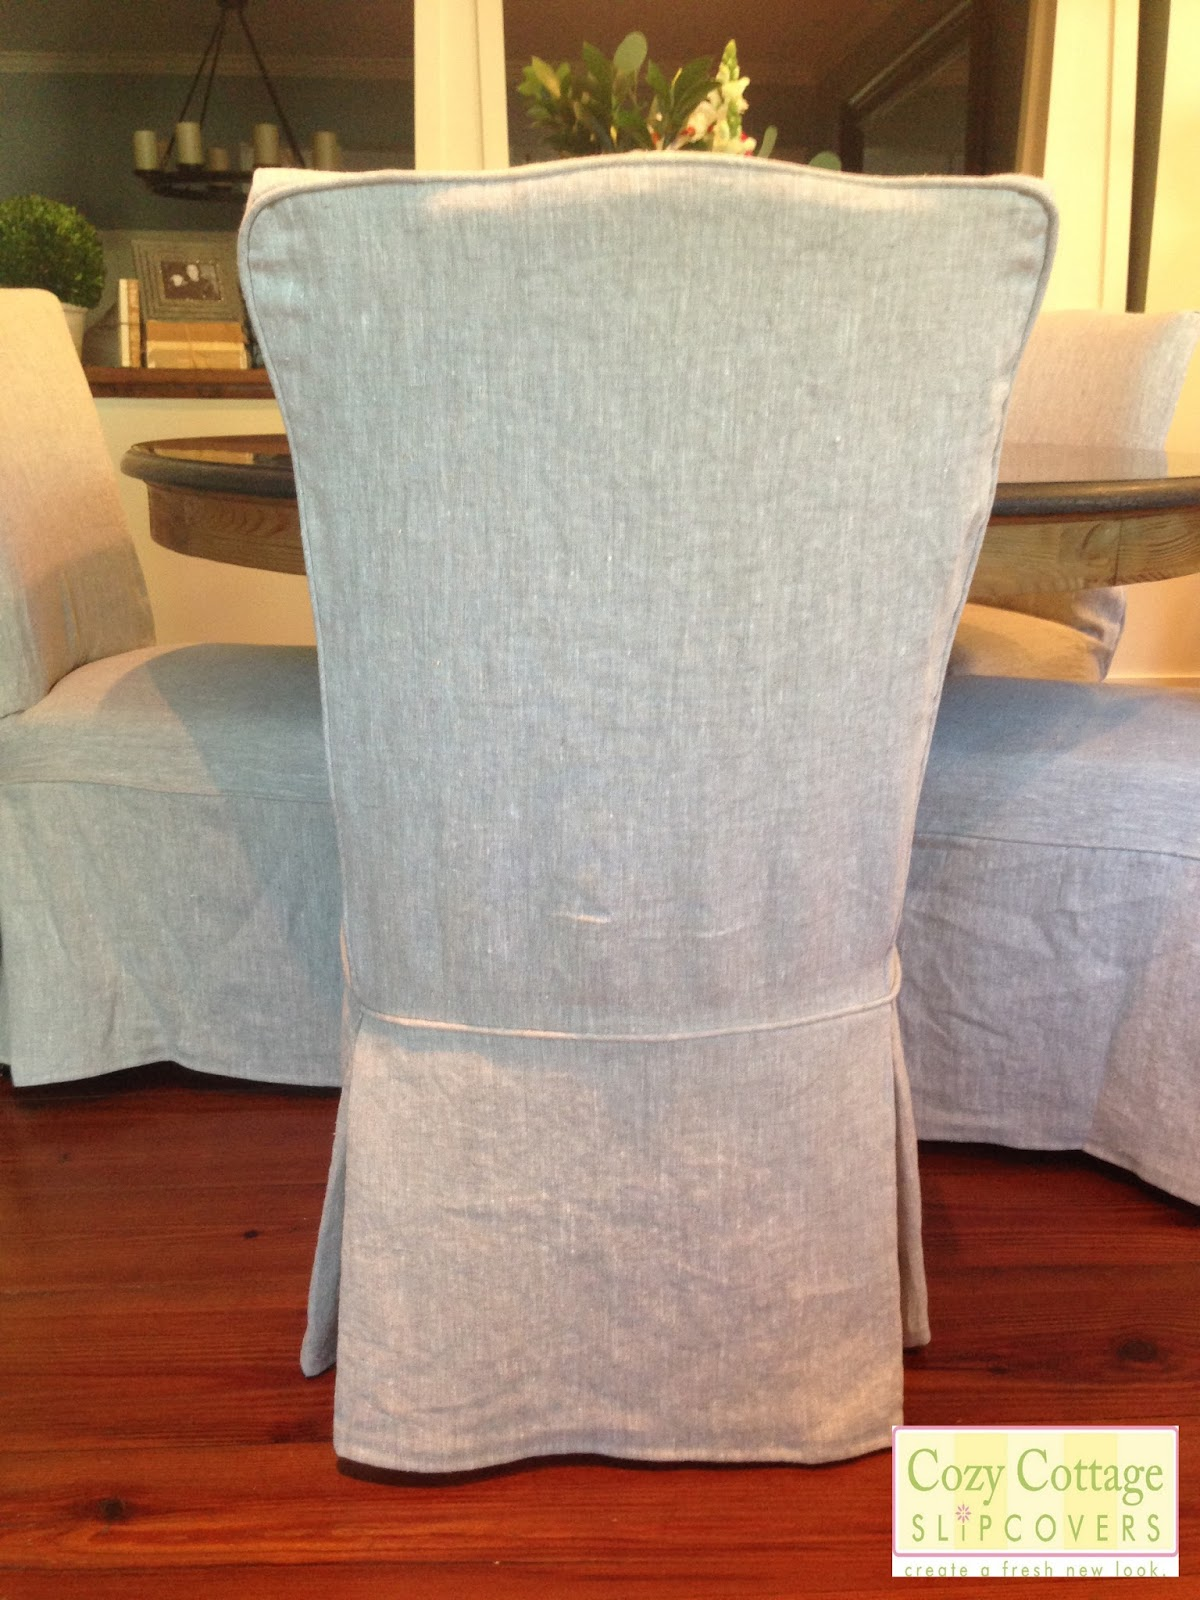 Rustic Dining Room Chair Covers Cover Rentals Rochester Ny Cozy Cottage Slipcovers Linen